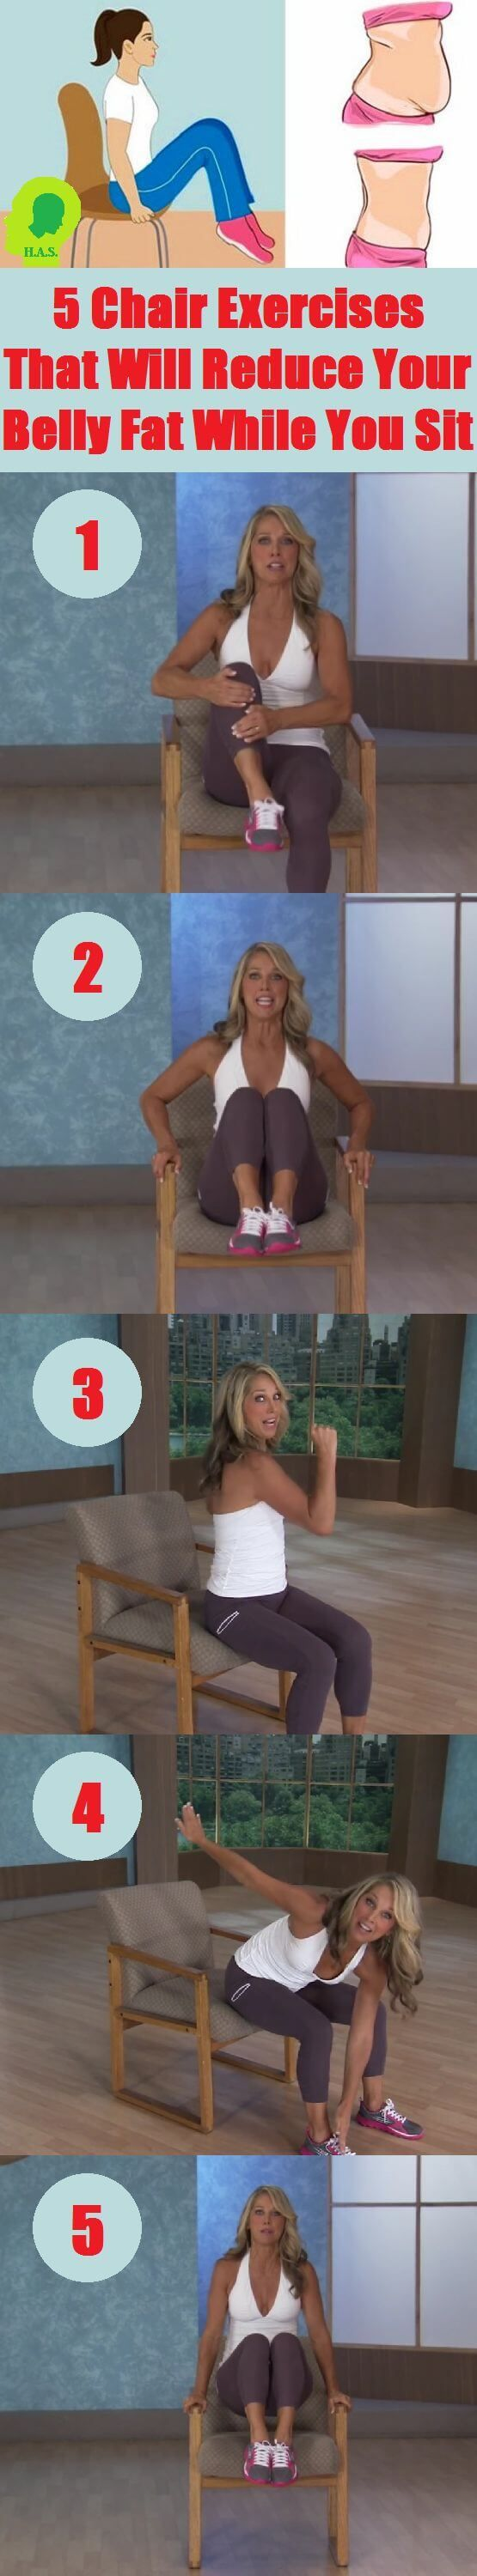 5 Chair Exercises That Will Reduce Your Belly Fat While You Sit - Home Health Solution